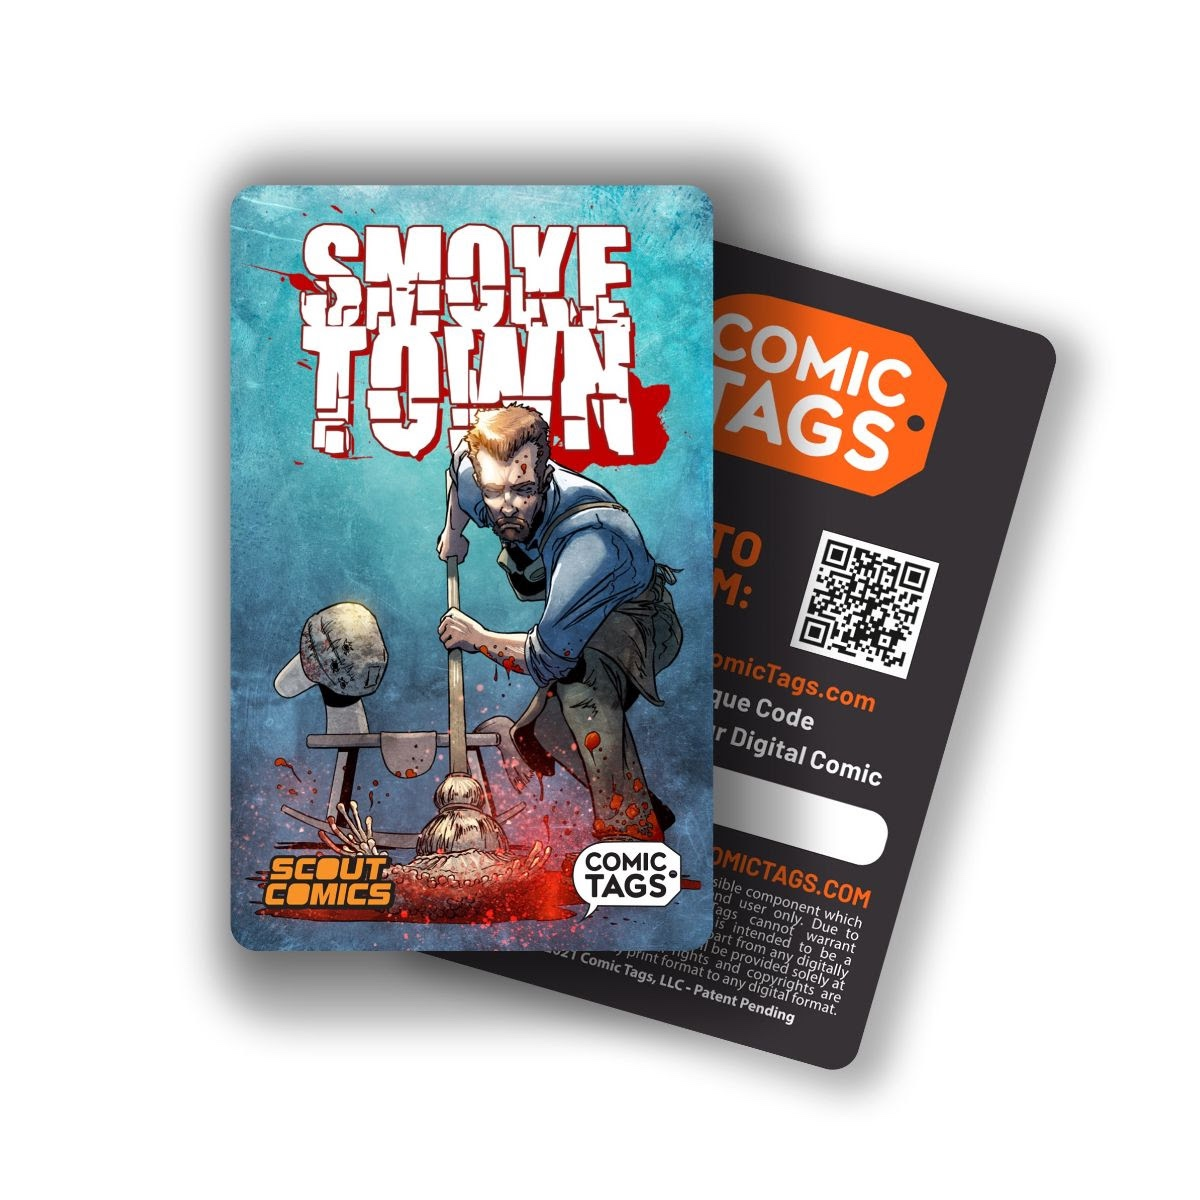 , Wave Two COMIC TAGS Are Now Available From Scout Comics, The Indie Comix Dispatch